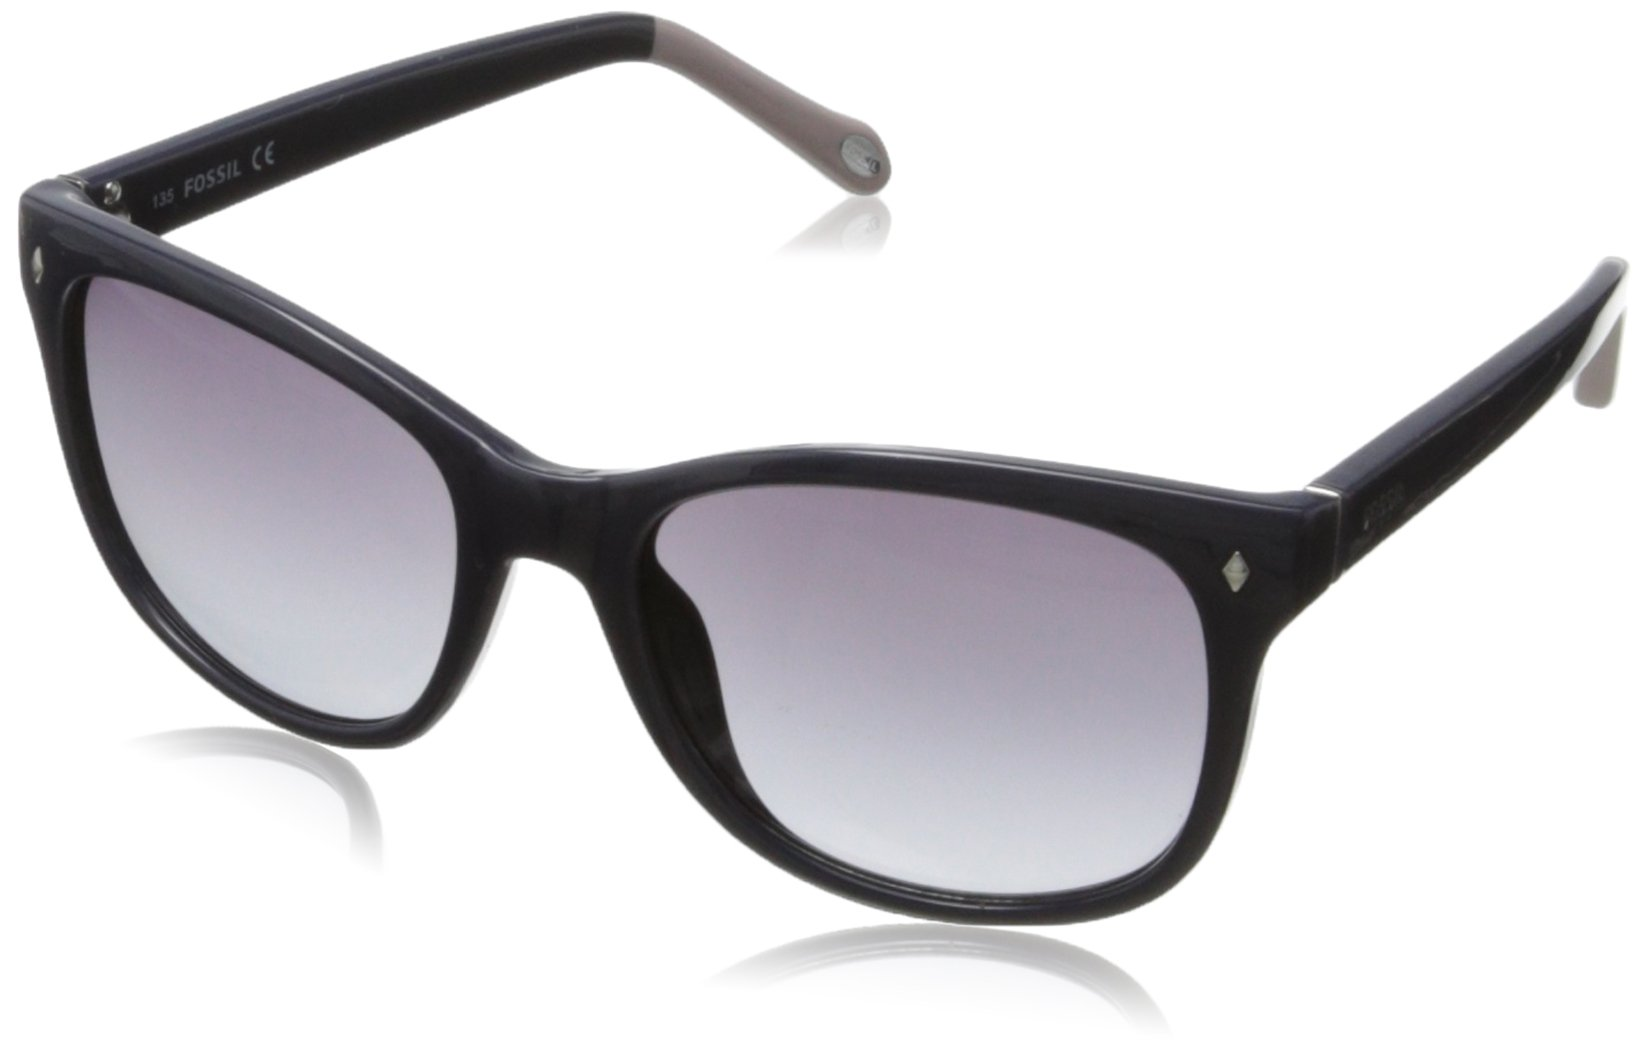 Fossil Women's FOS3006S Rectangular Sunglasses